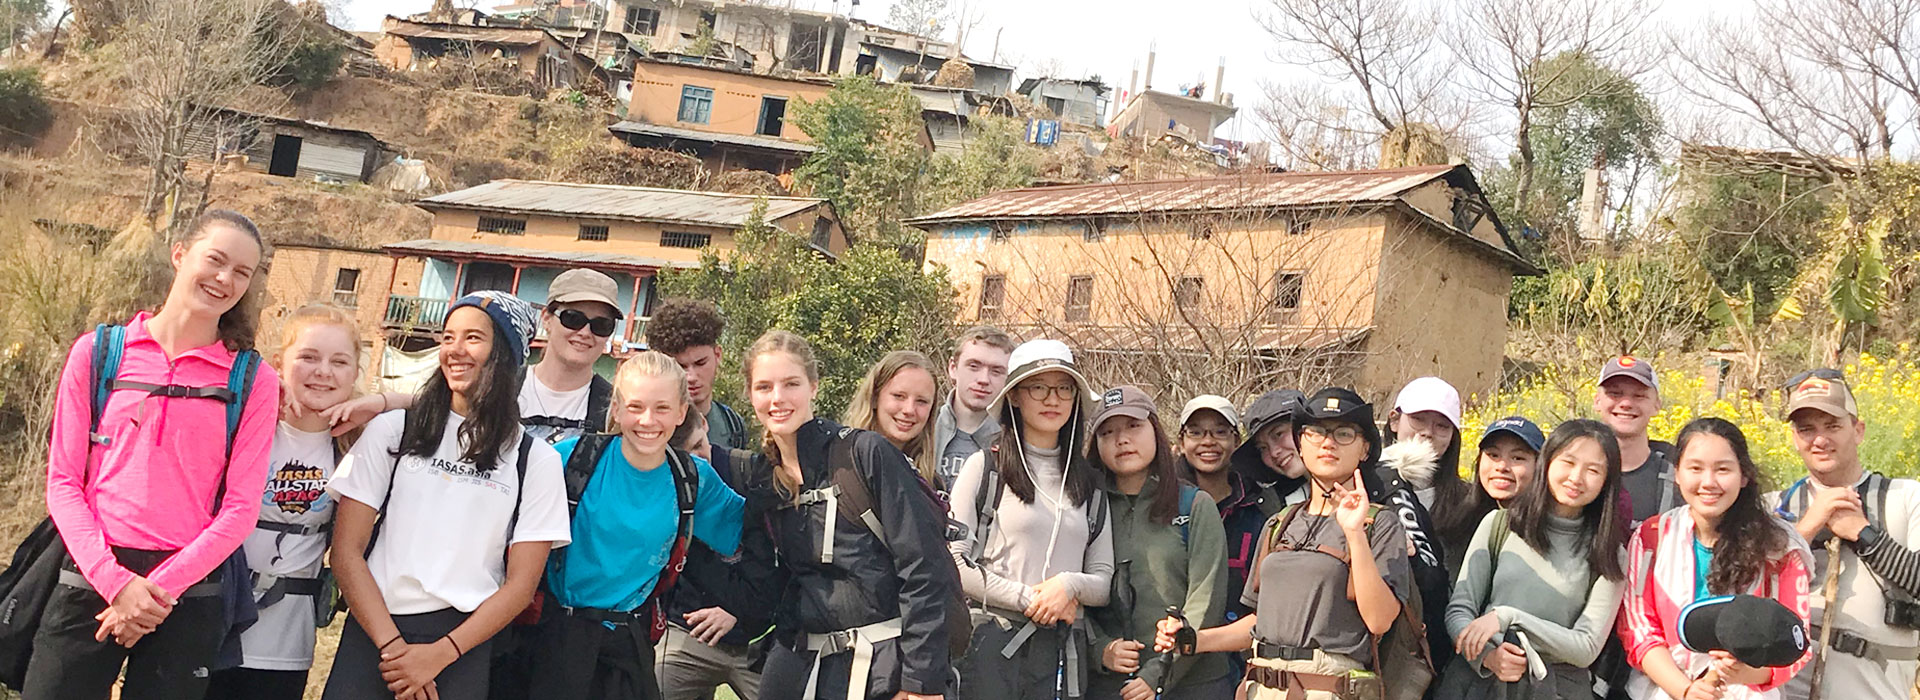 International Students Trekking Through A Typical Nepalese Village.Moonlight Nepal